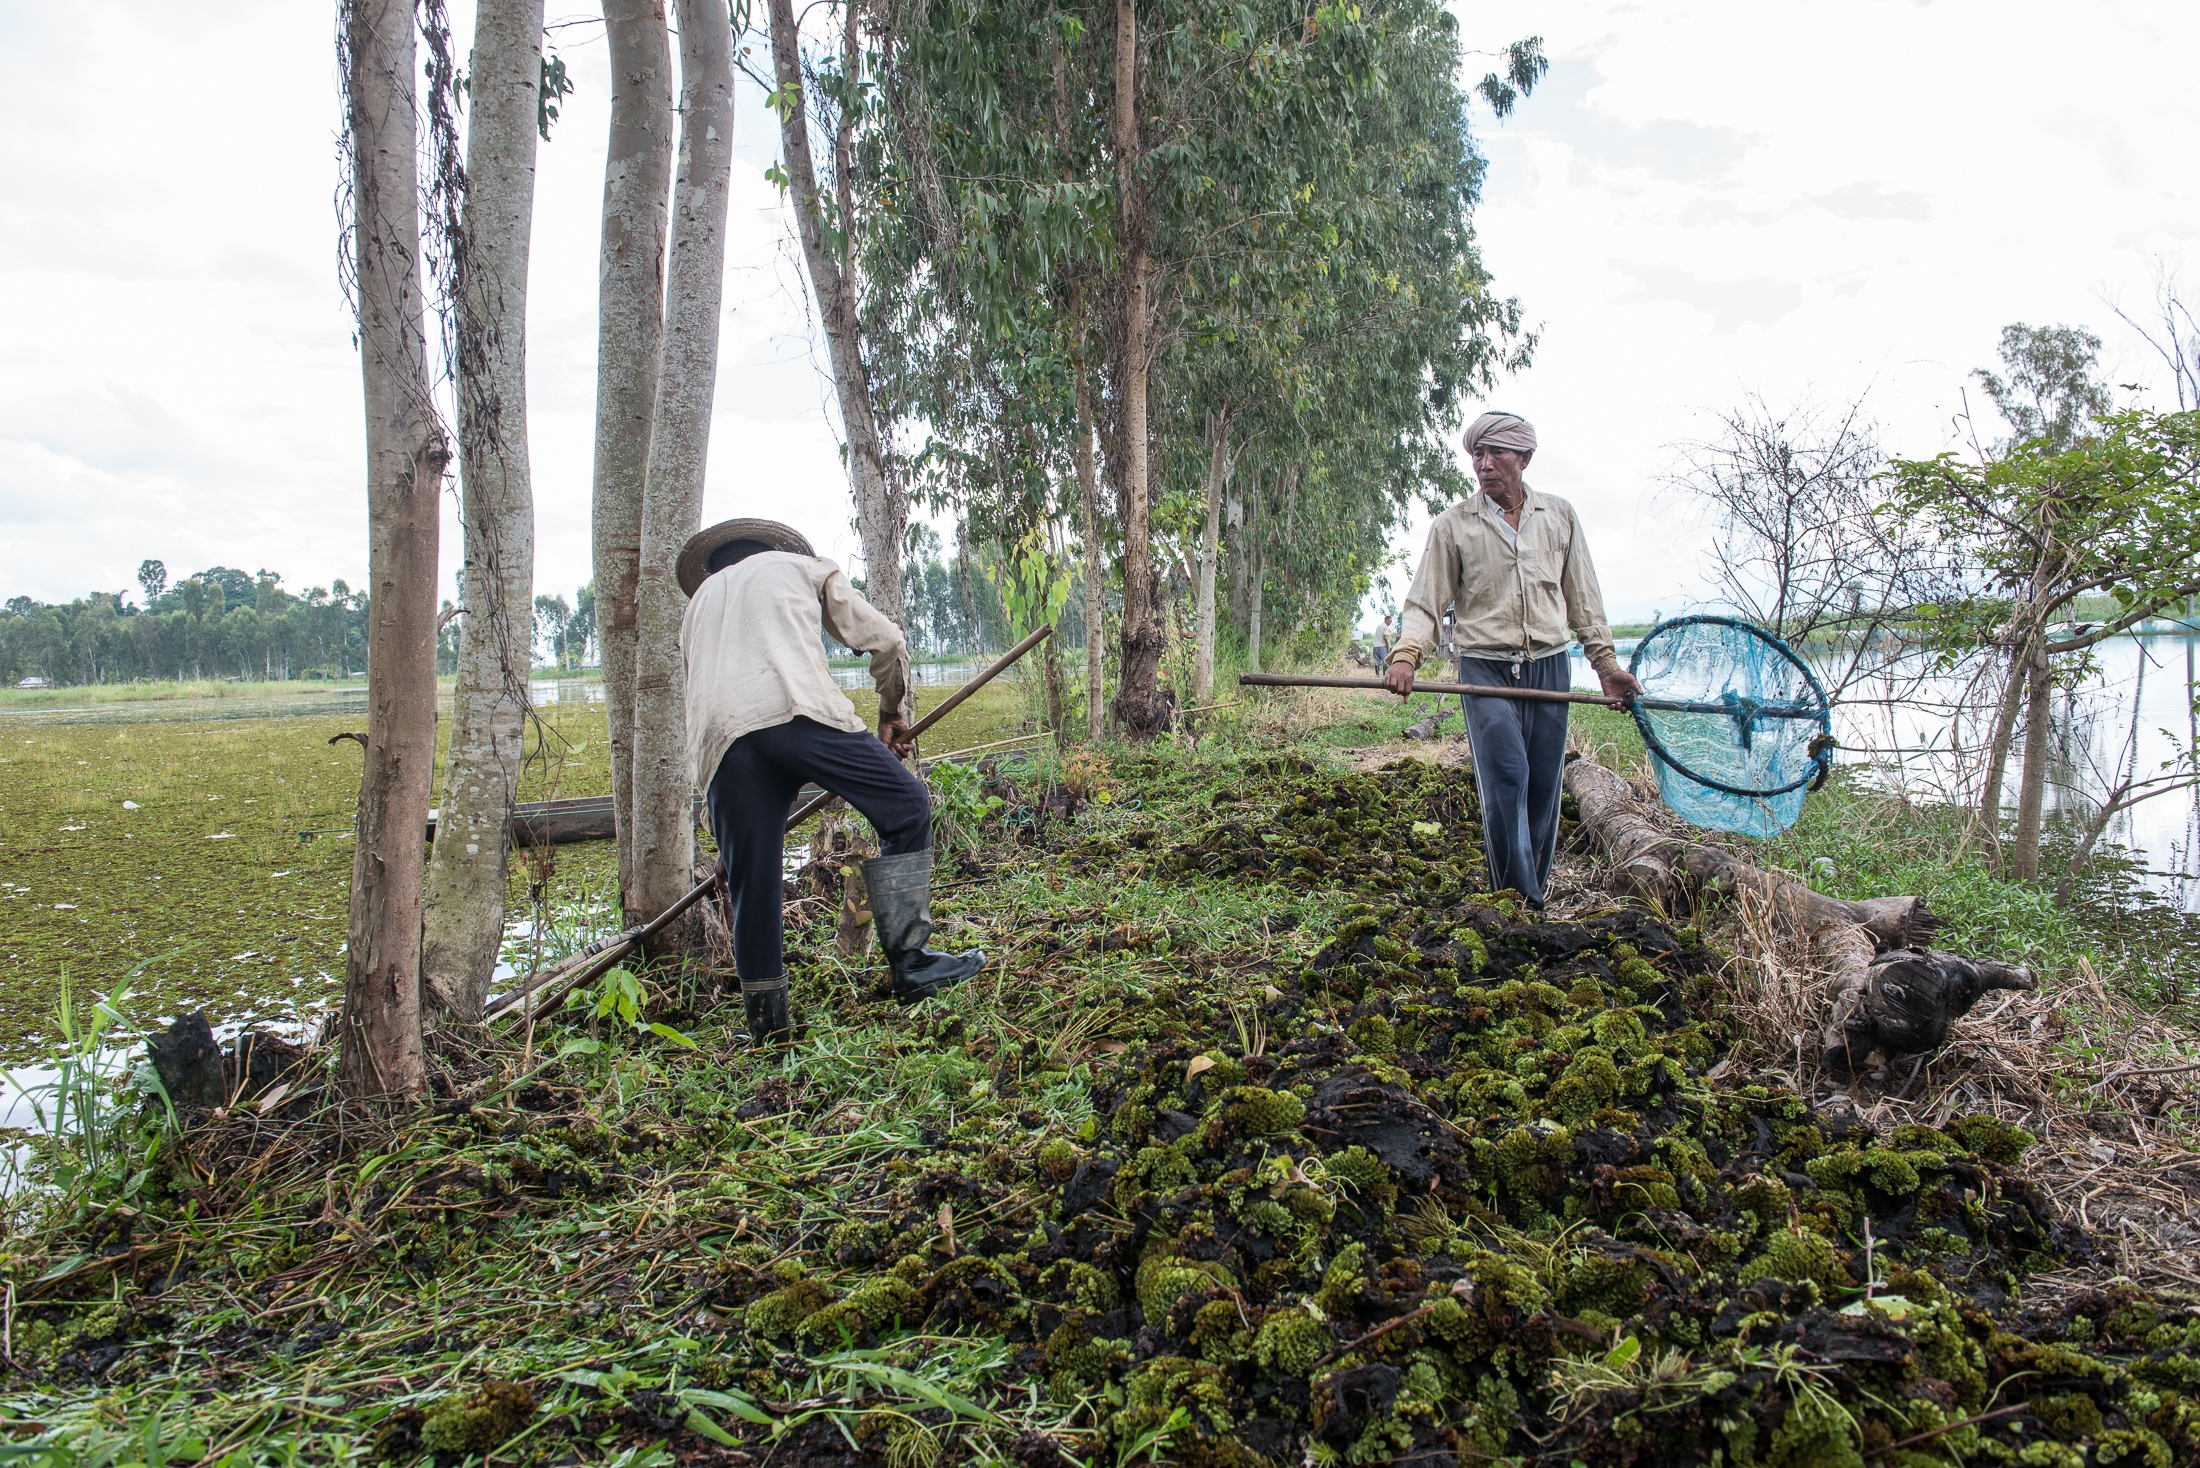 Indrajeet Tombram (left) and Haobijam Manihar perform the backbreaking task of dredging out weeds that had proliferated on a fish farm in Loktak Lake. Increased erosion and use of fertilizer along with altered hydrology due to the commissioning of the Ithai Dam have resulted in increased rates of eutrophication.